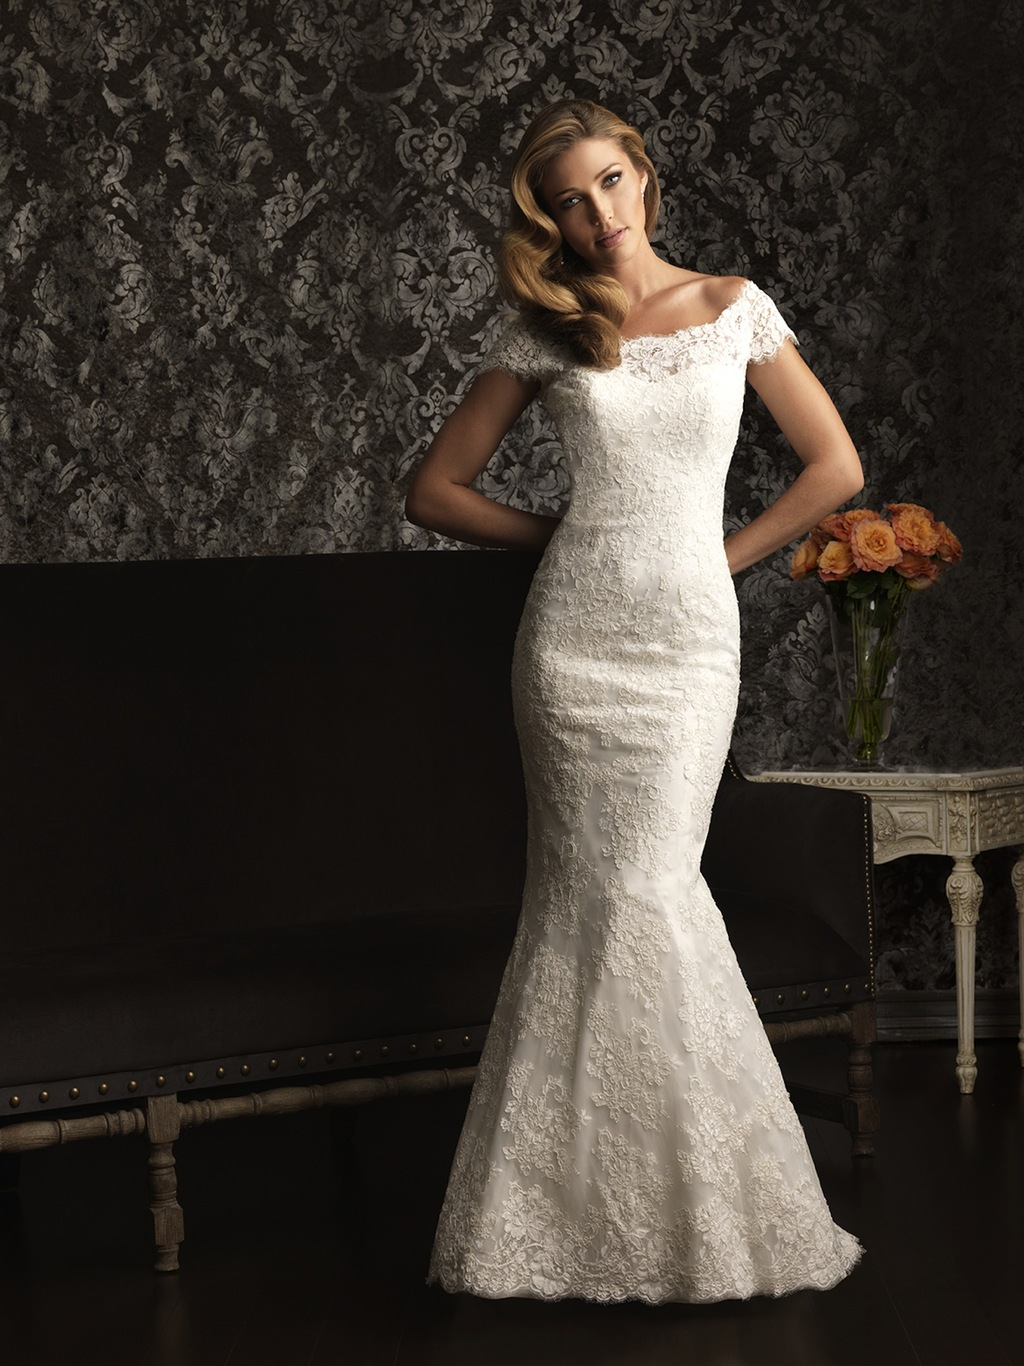 Allure-bridals-wedding-dress-bridal-gown-allure-collection-2013-9000f2.full